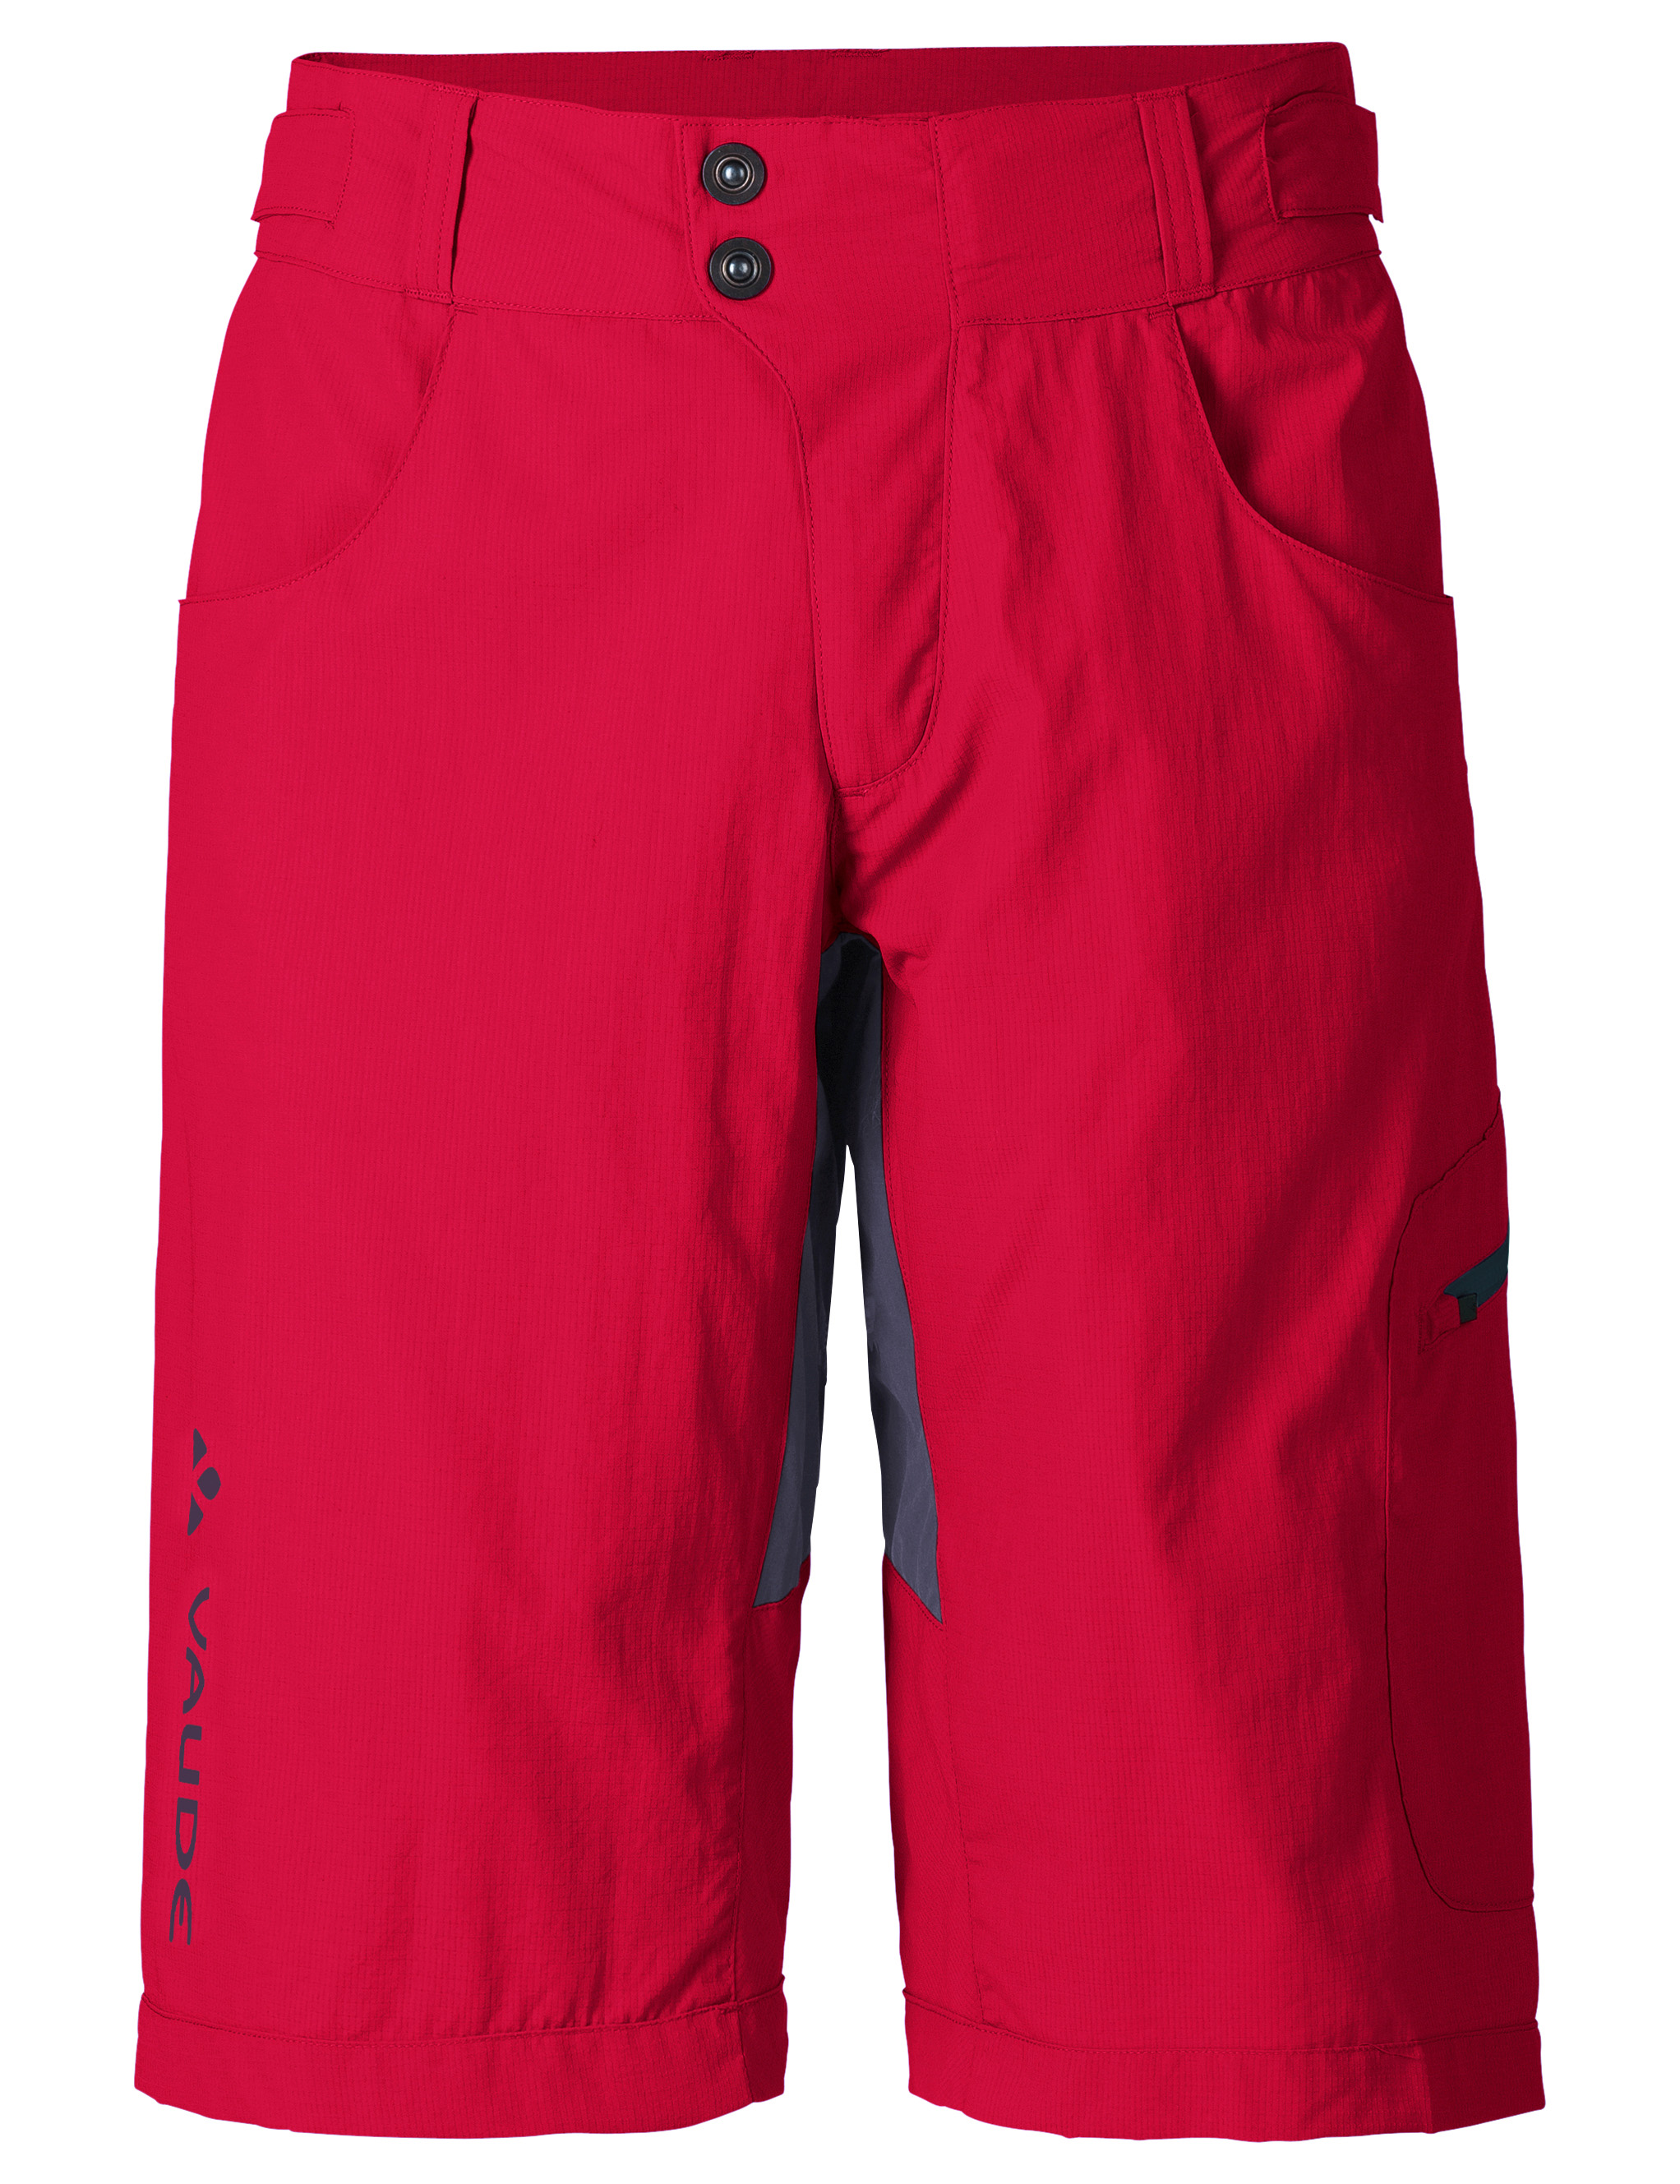 VAUDE Men´s Brand Shorts indian red Größe L - schneider-sports